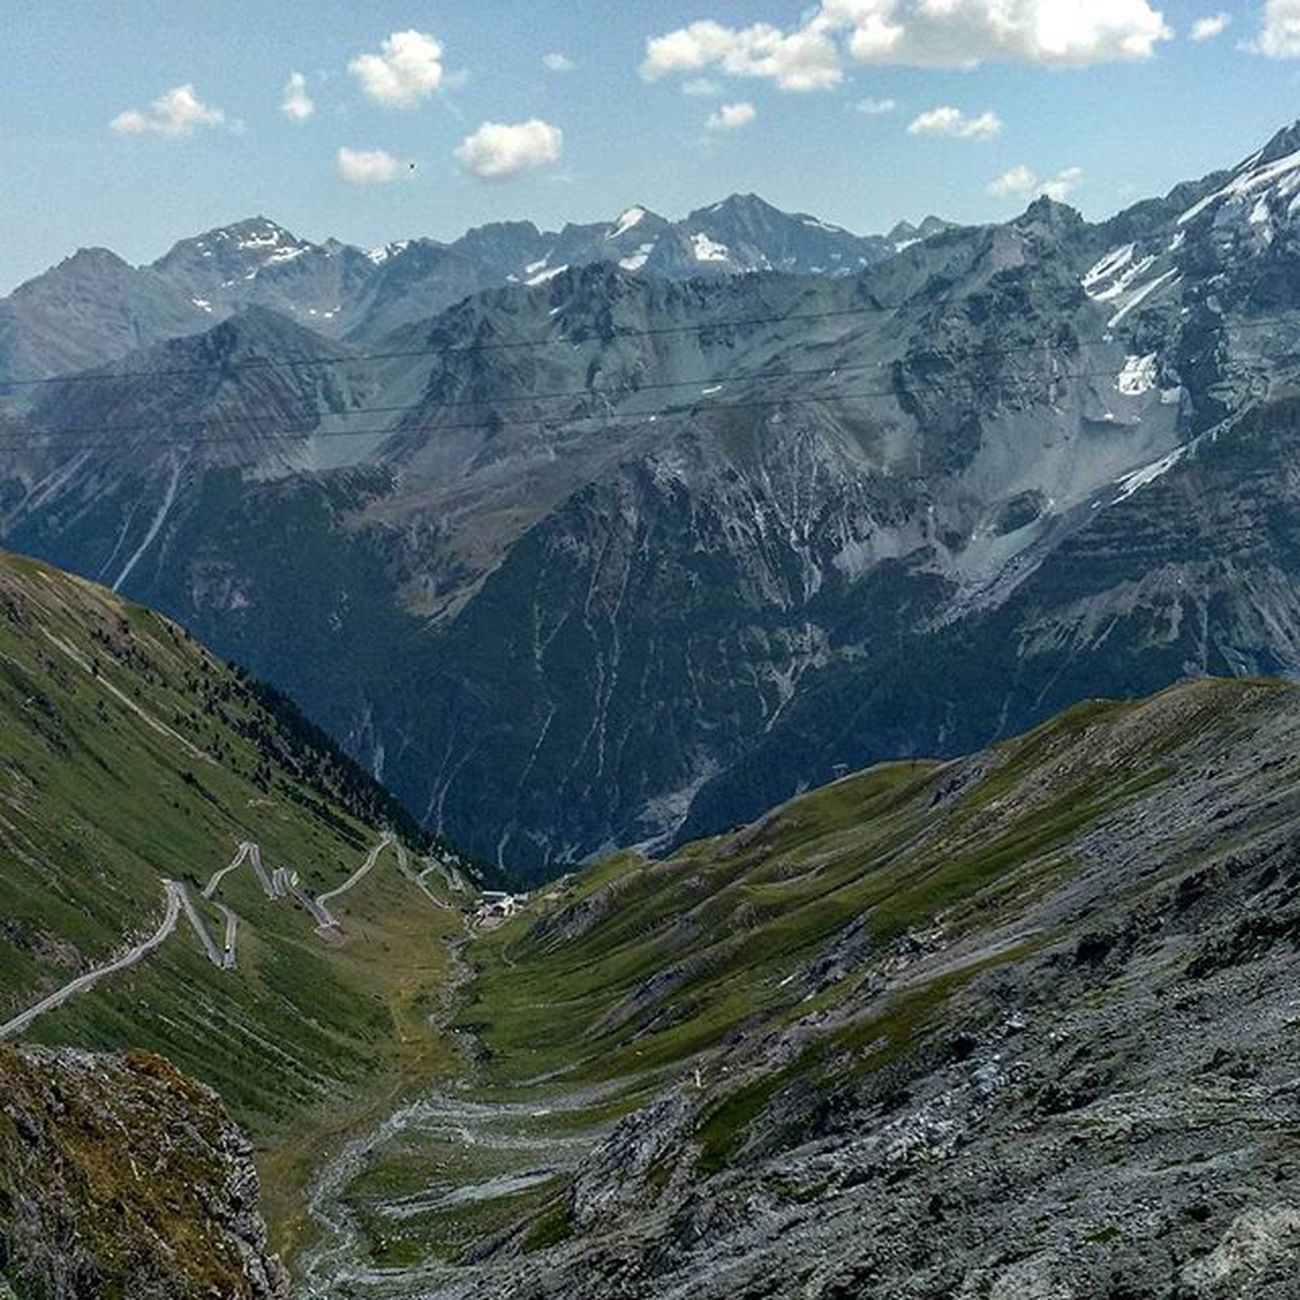 Wonders of Nature Stelviopass Passodellostelvio Mountains Snowtops Green Greenvalley Slopes Bikeride Mysummeradventure2015 EyeCandy  Italy Views HTC HTCDesireEye Nofilter Creationatitsbest